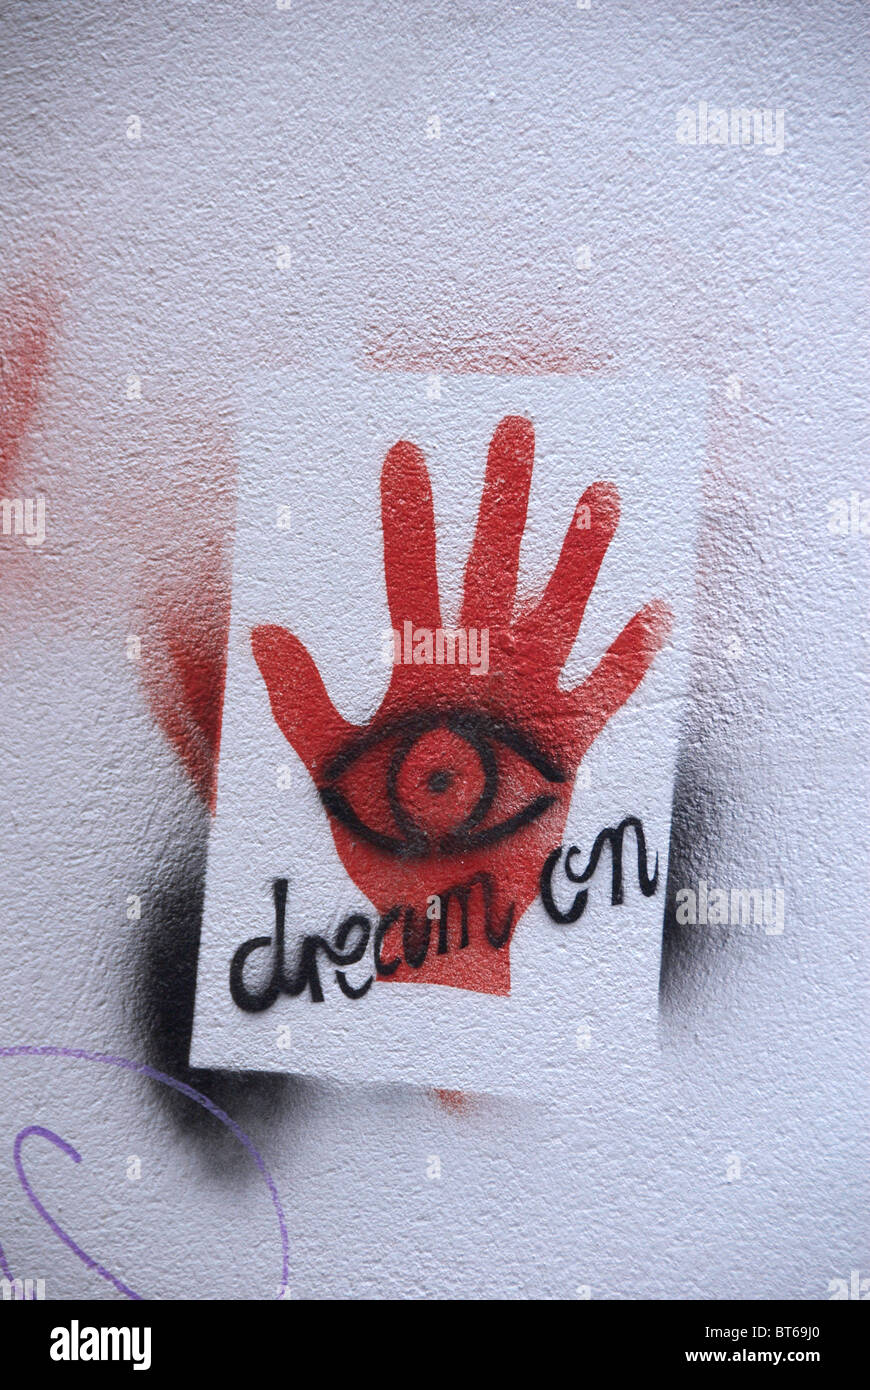 Graffiti Dream On fortune-telling sign on wall in Melbourne South Australia - Stock Image